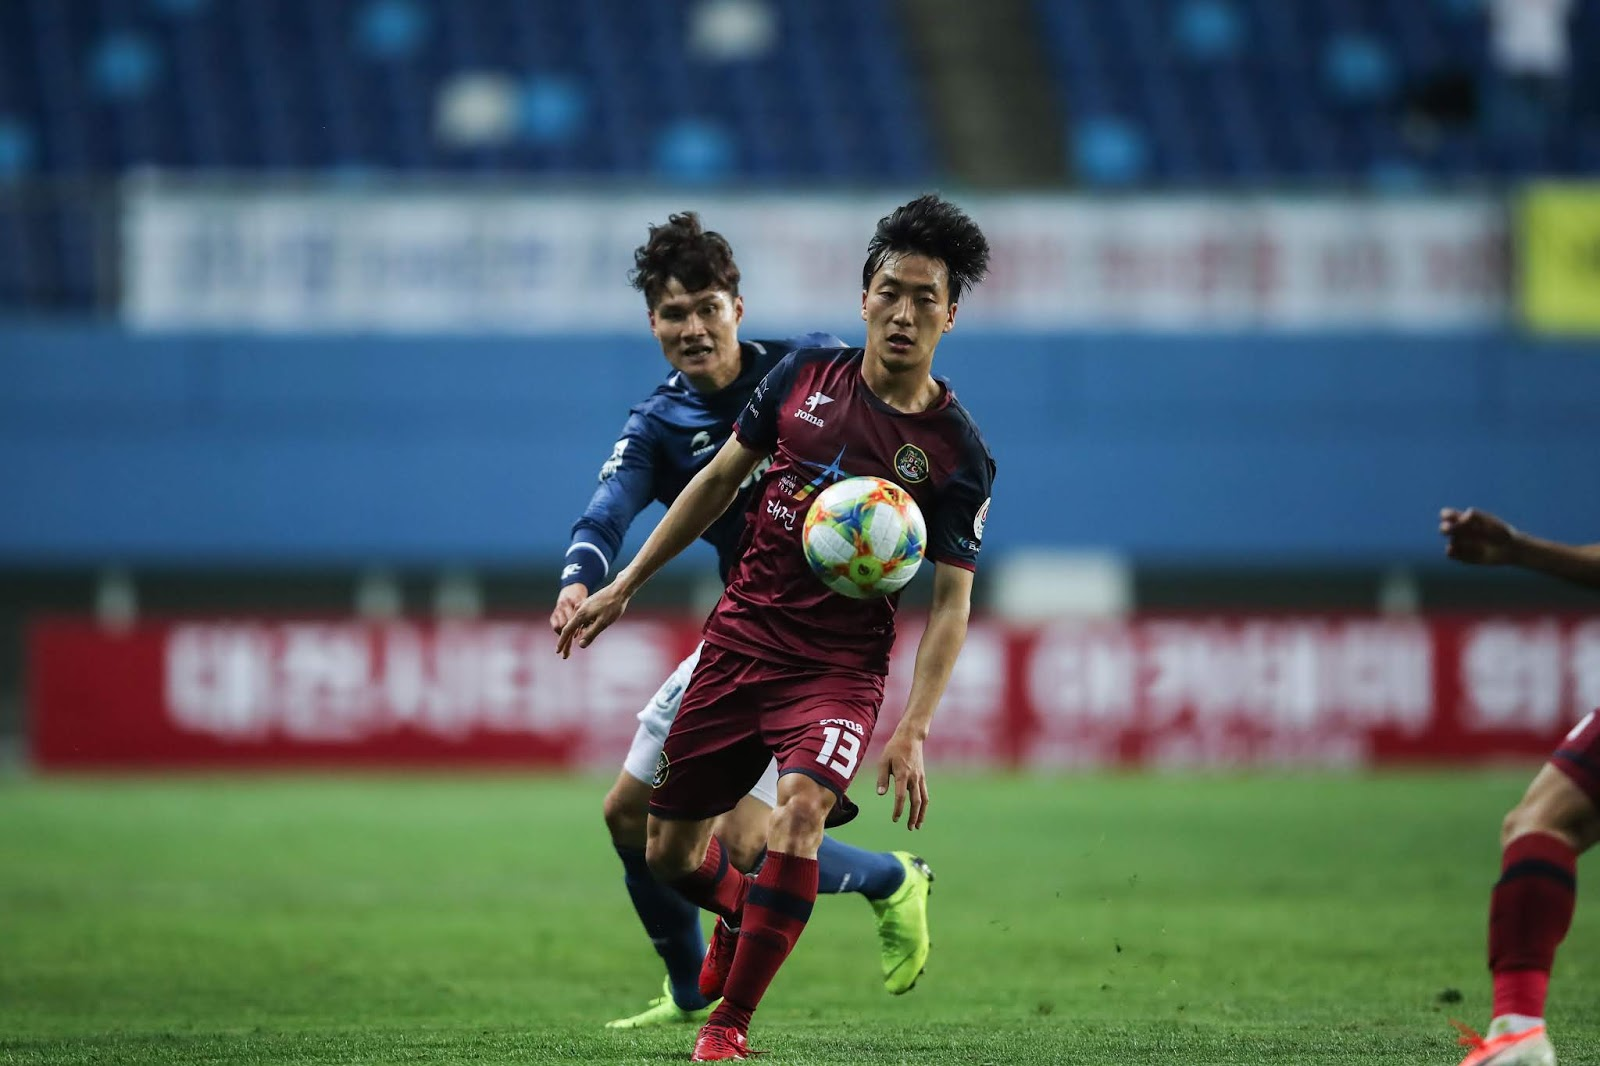 Preview: Daejeon Citizen vs Busan IPark K League 2 Round 10 Shin Hak-young